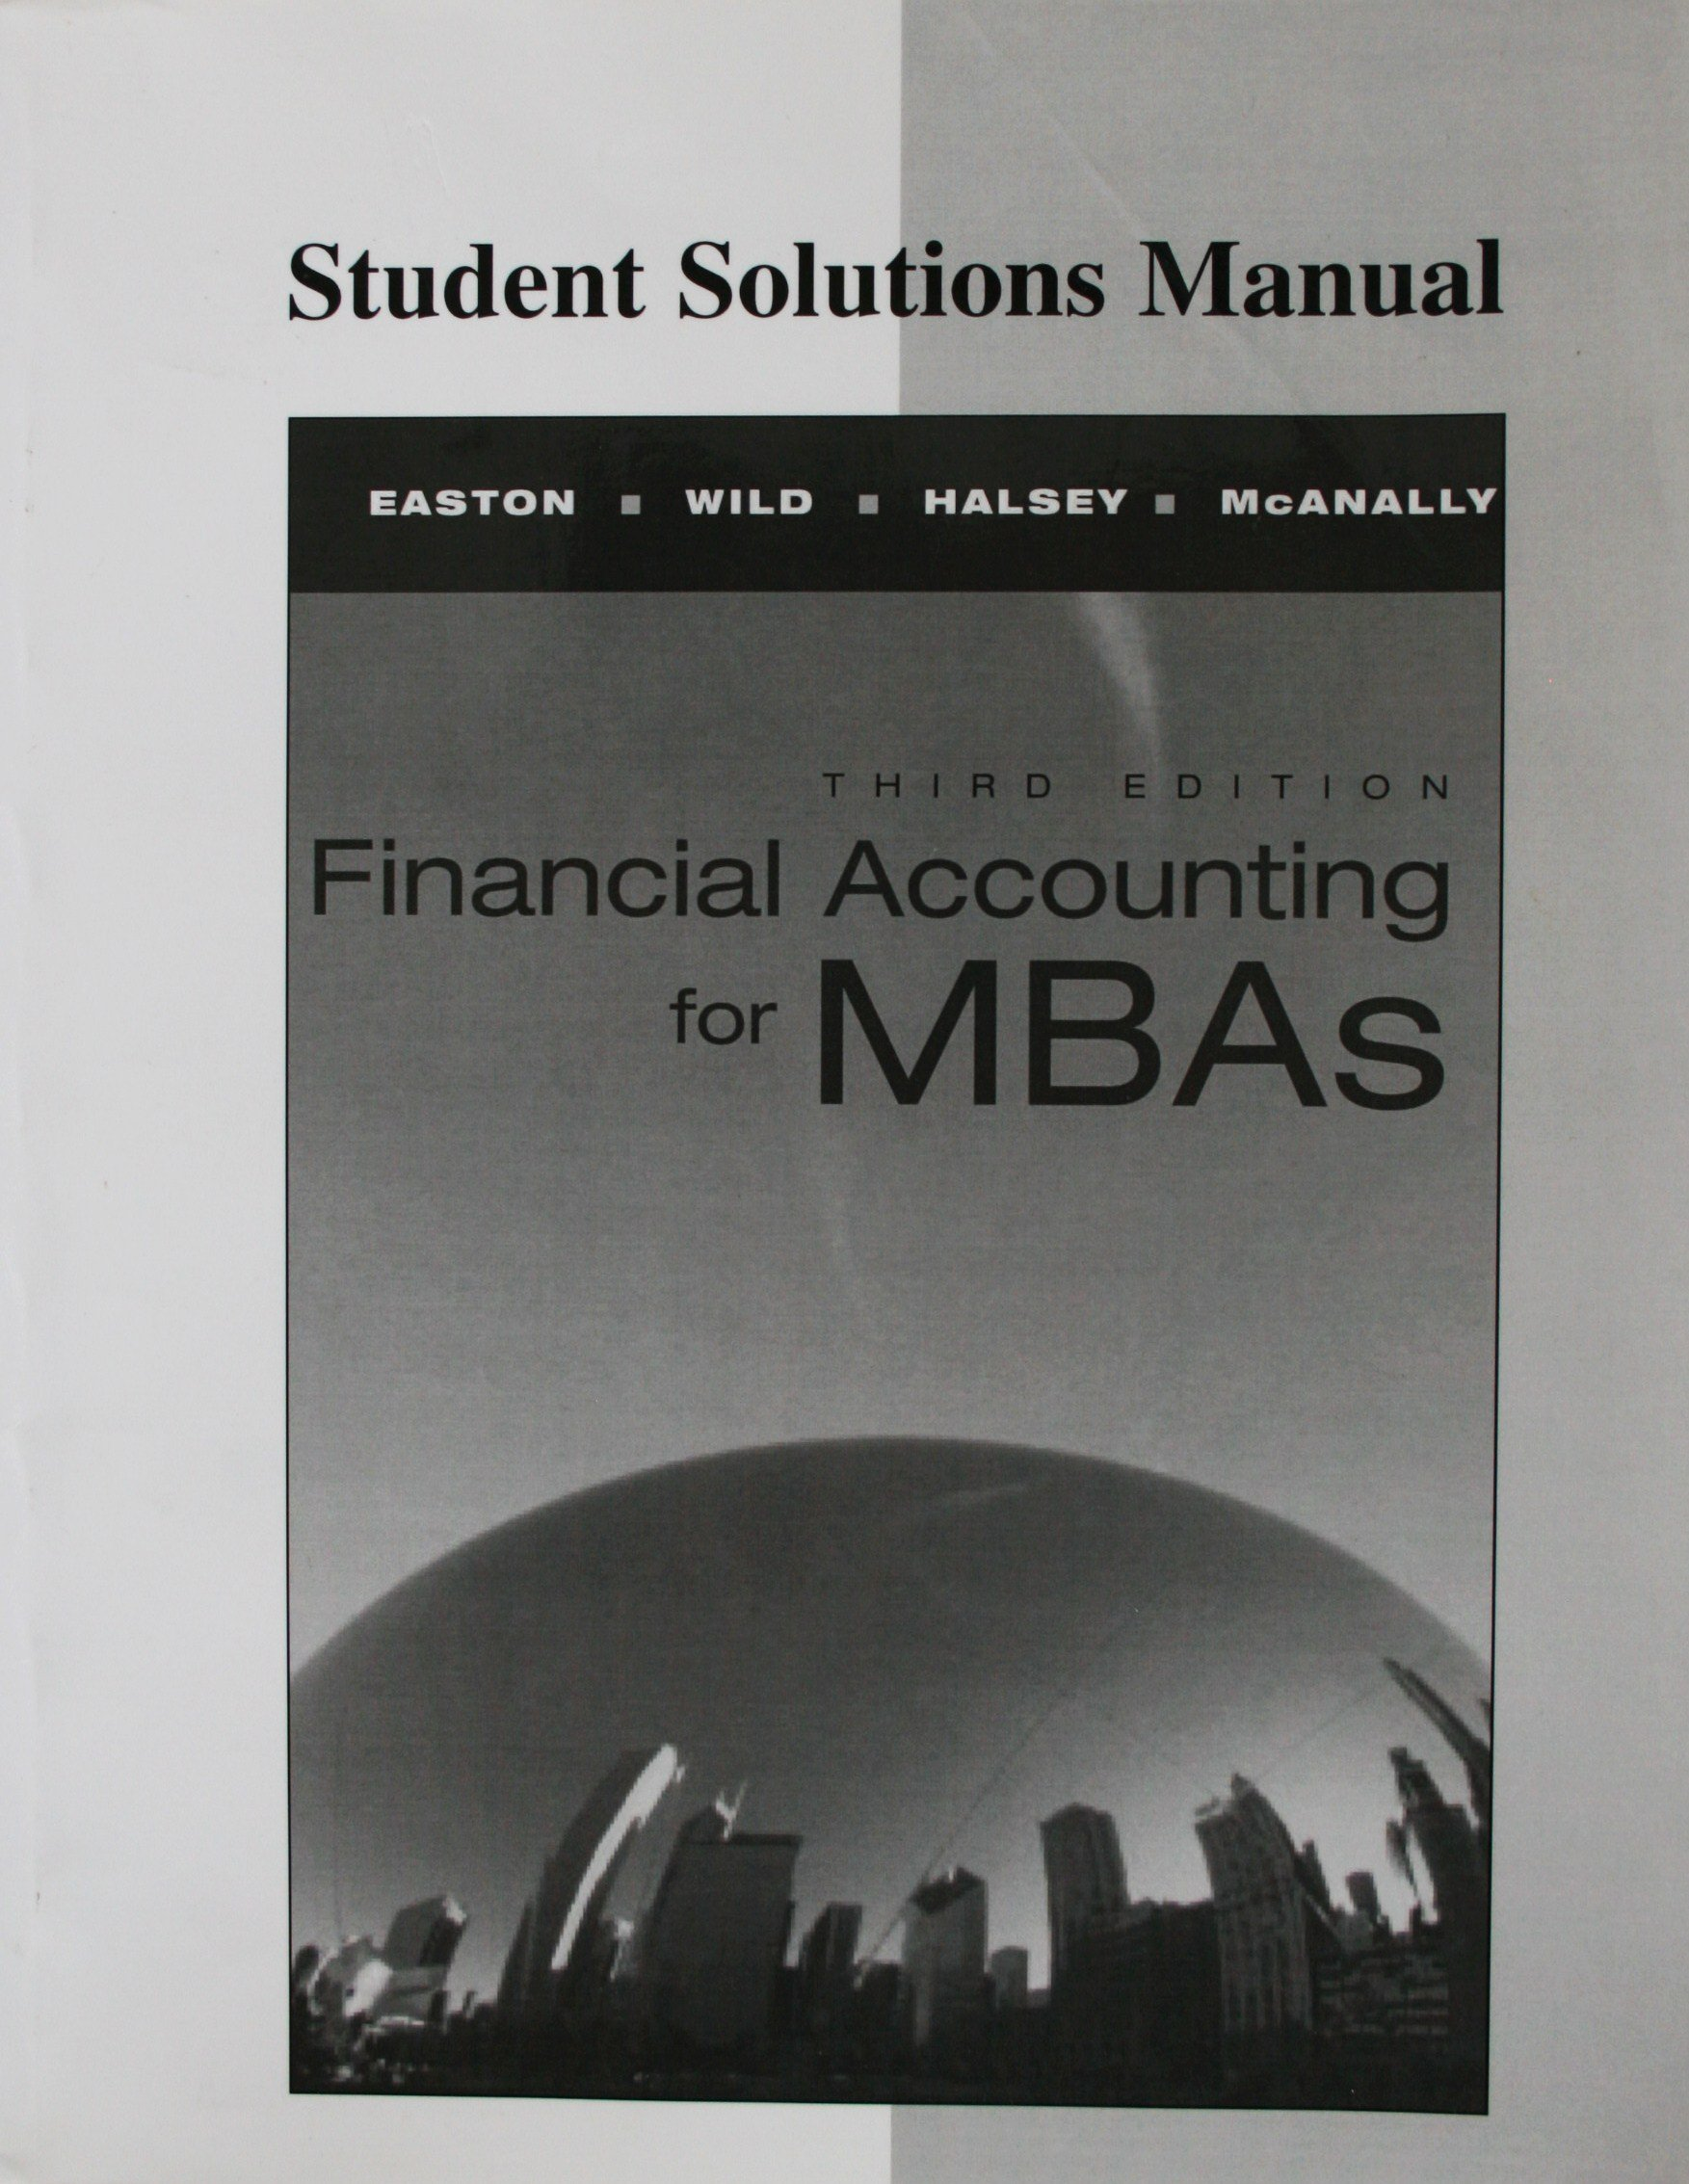 Student Solutions Manual for Financial Accounting for Mbas: PETER D.  EASTON: 9780978727949: Amazon.com: Books